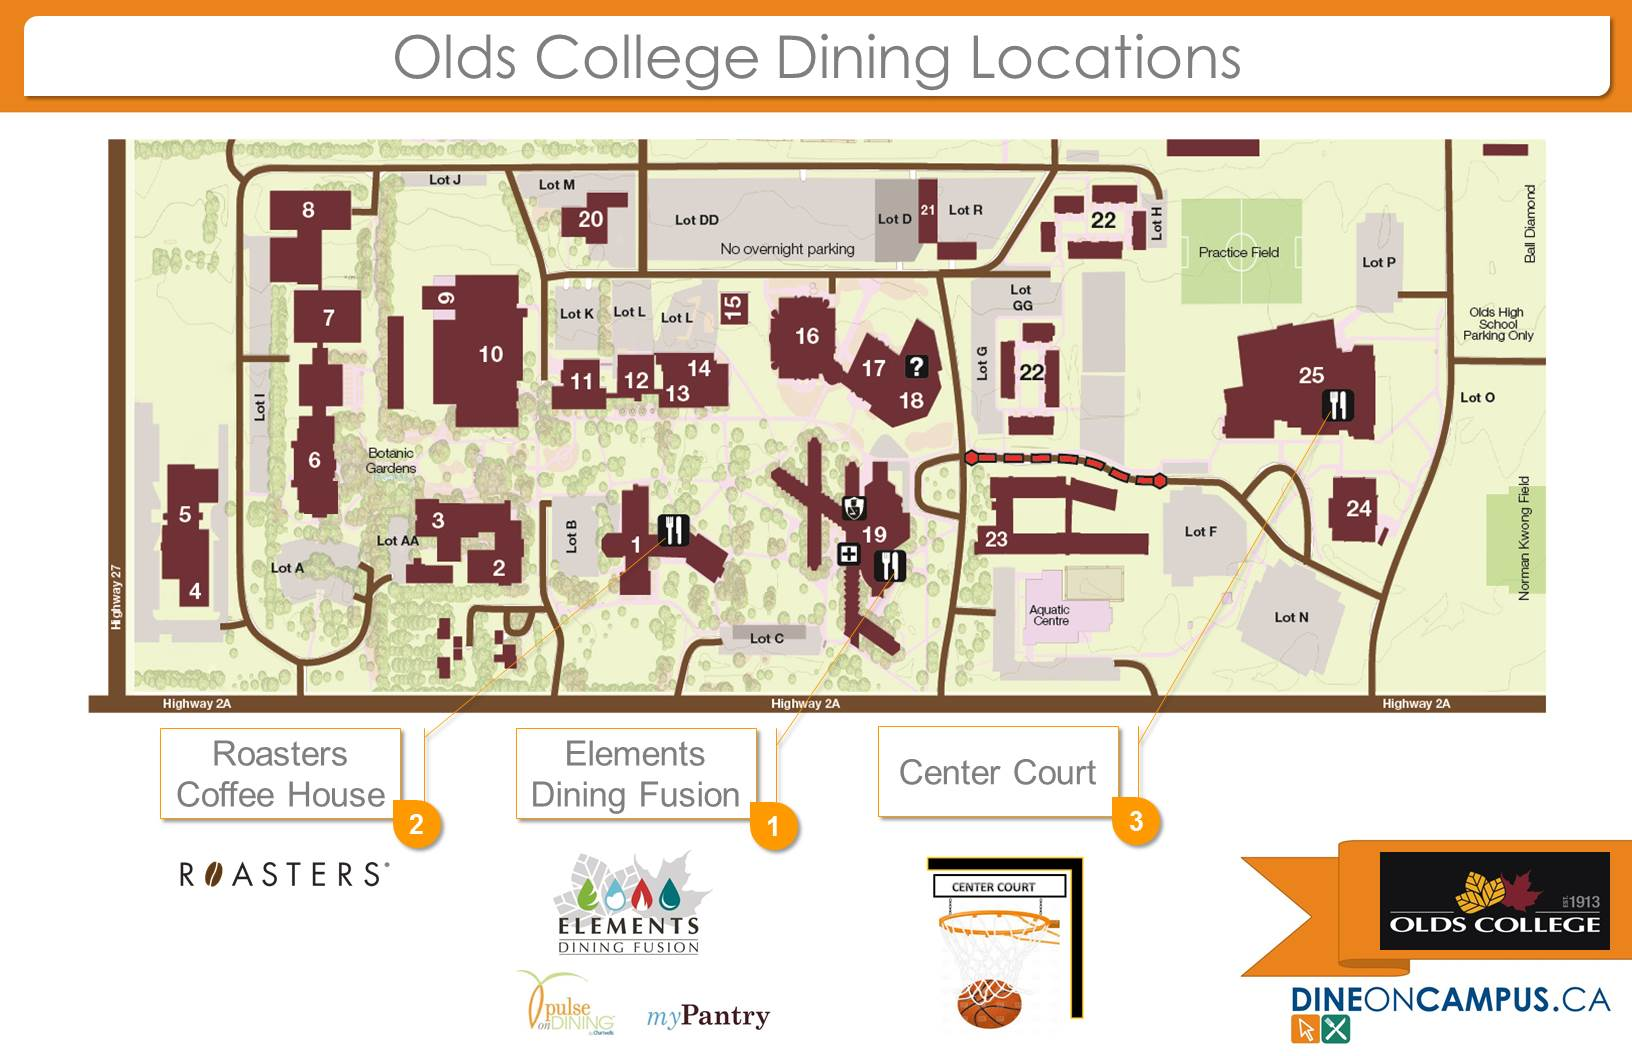 Olds Campus Dining Map